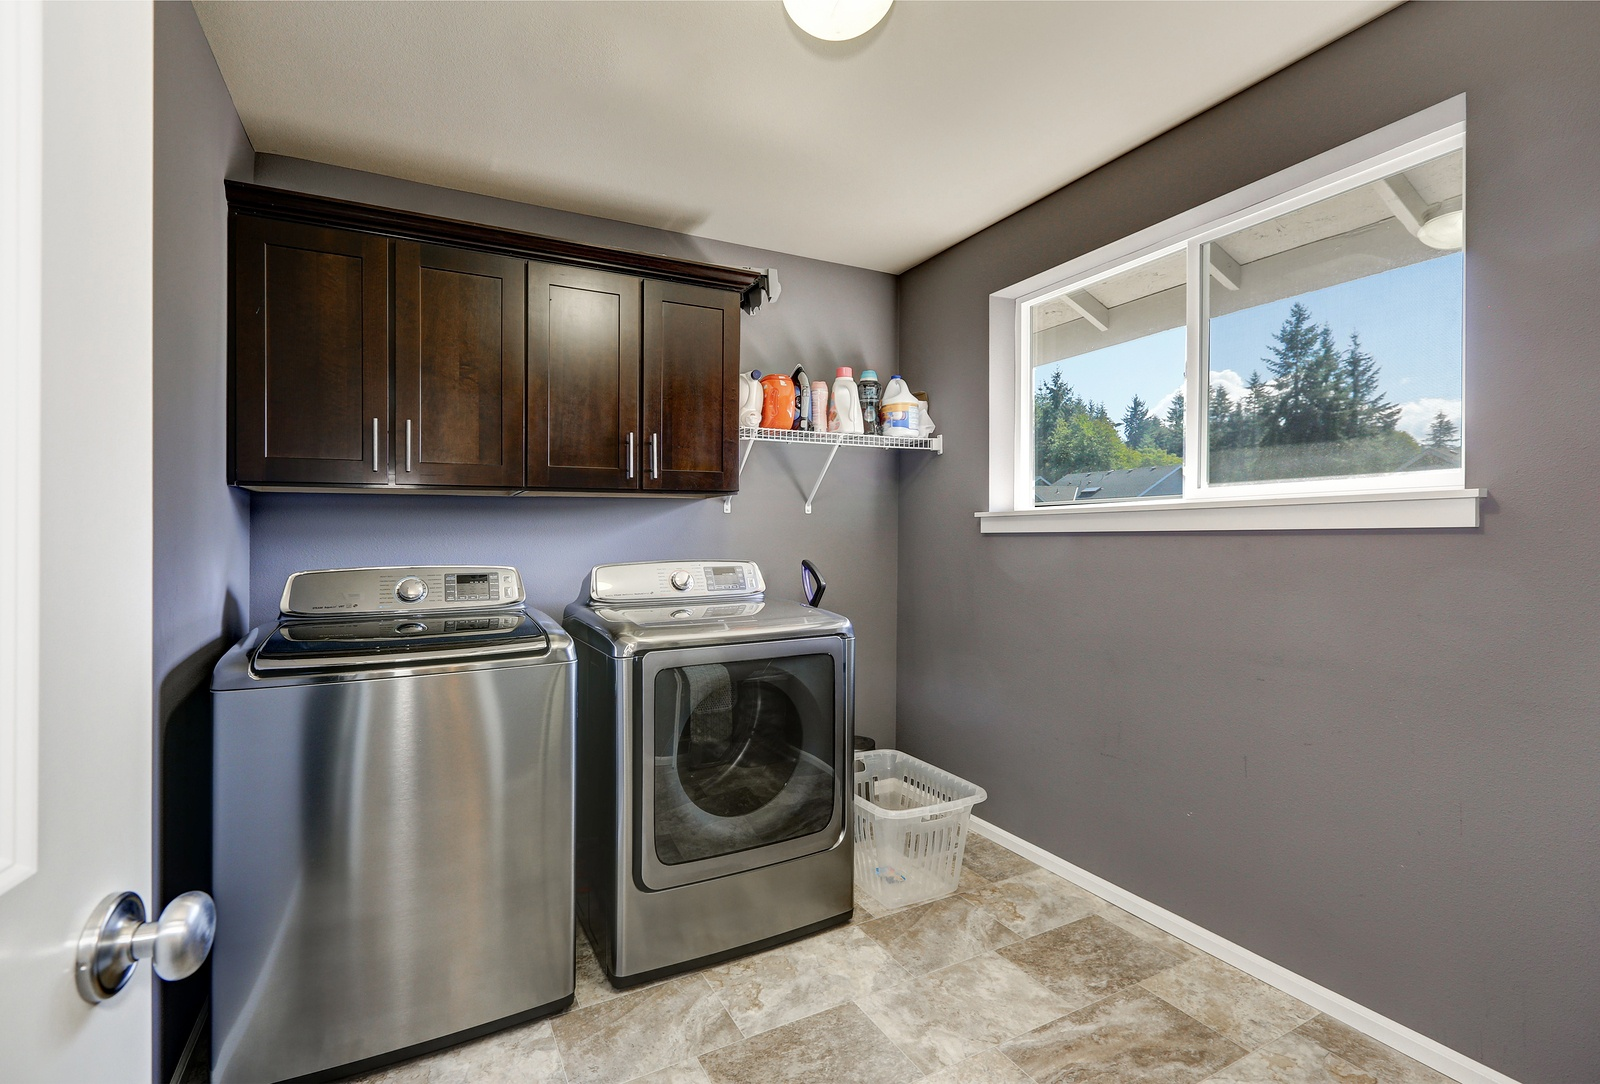 bigstock-Grey-Laundry-Room-With-Modern--152875736.jpg